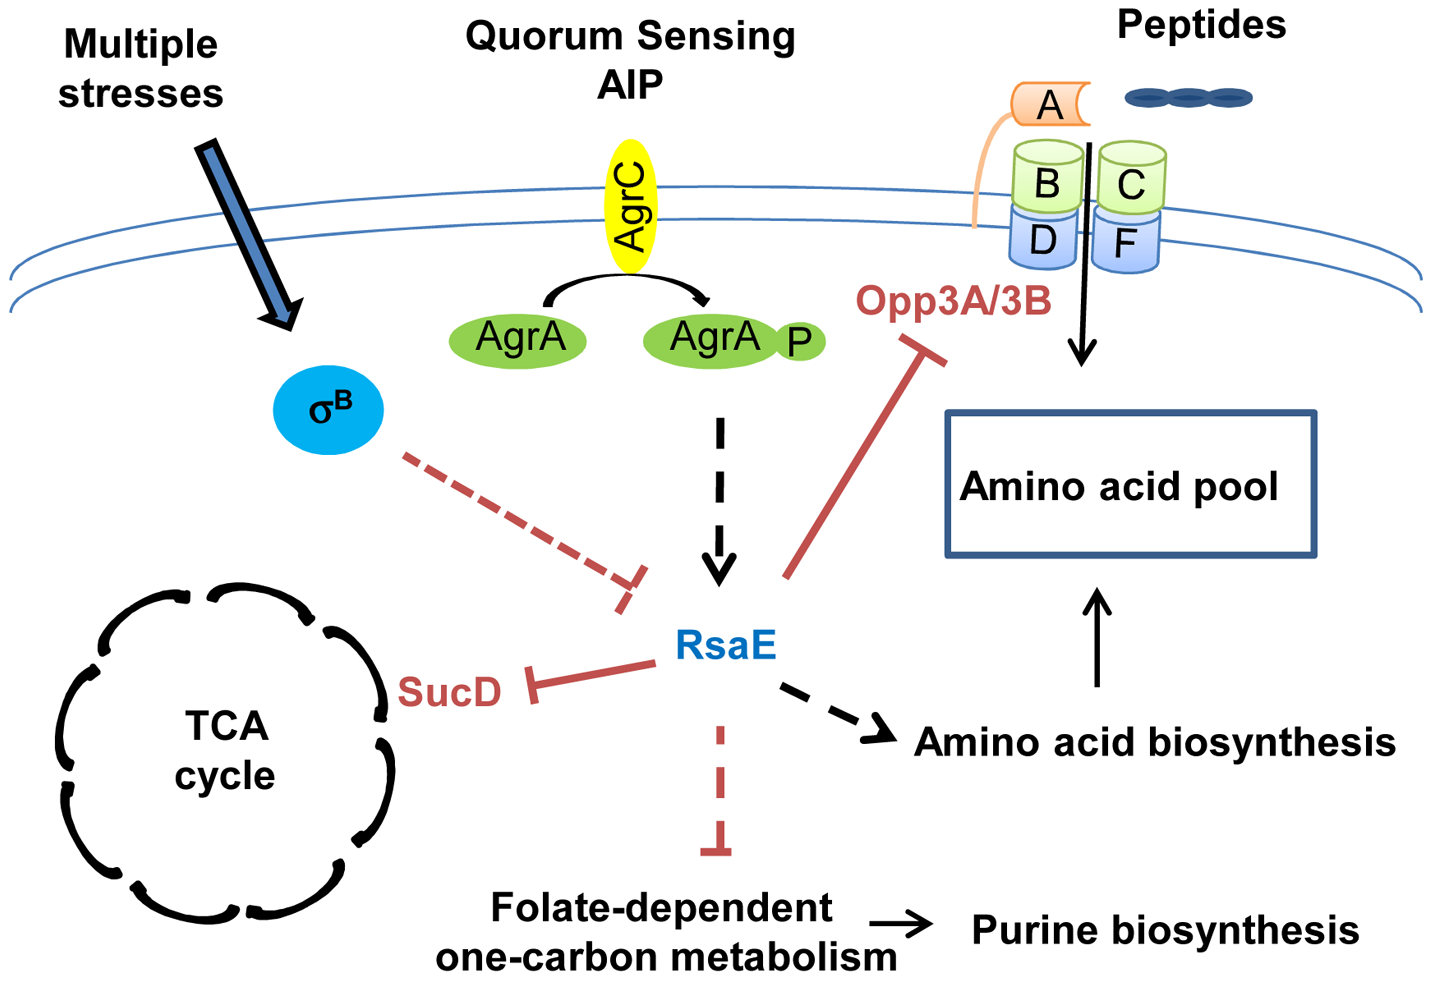 RsaE controls central metabolic pathways.